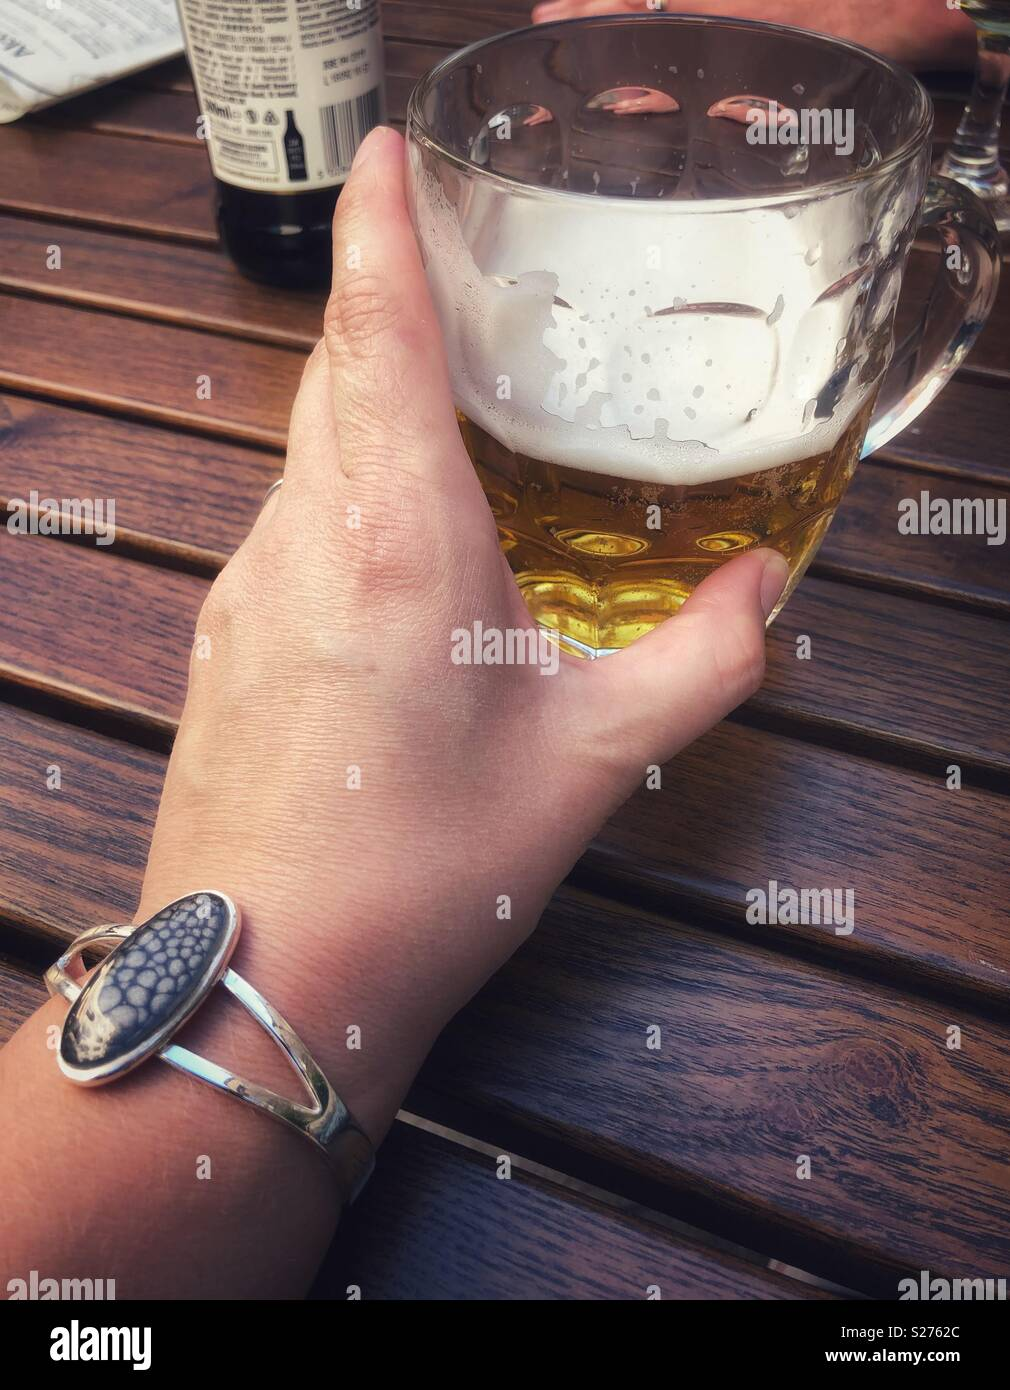 Woman holding a half drunk pint of beer in an old fashioned pint pot whilst sat by a wooden table. - Stock Image